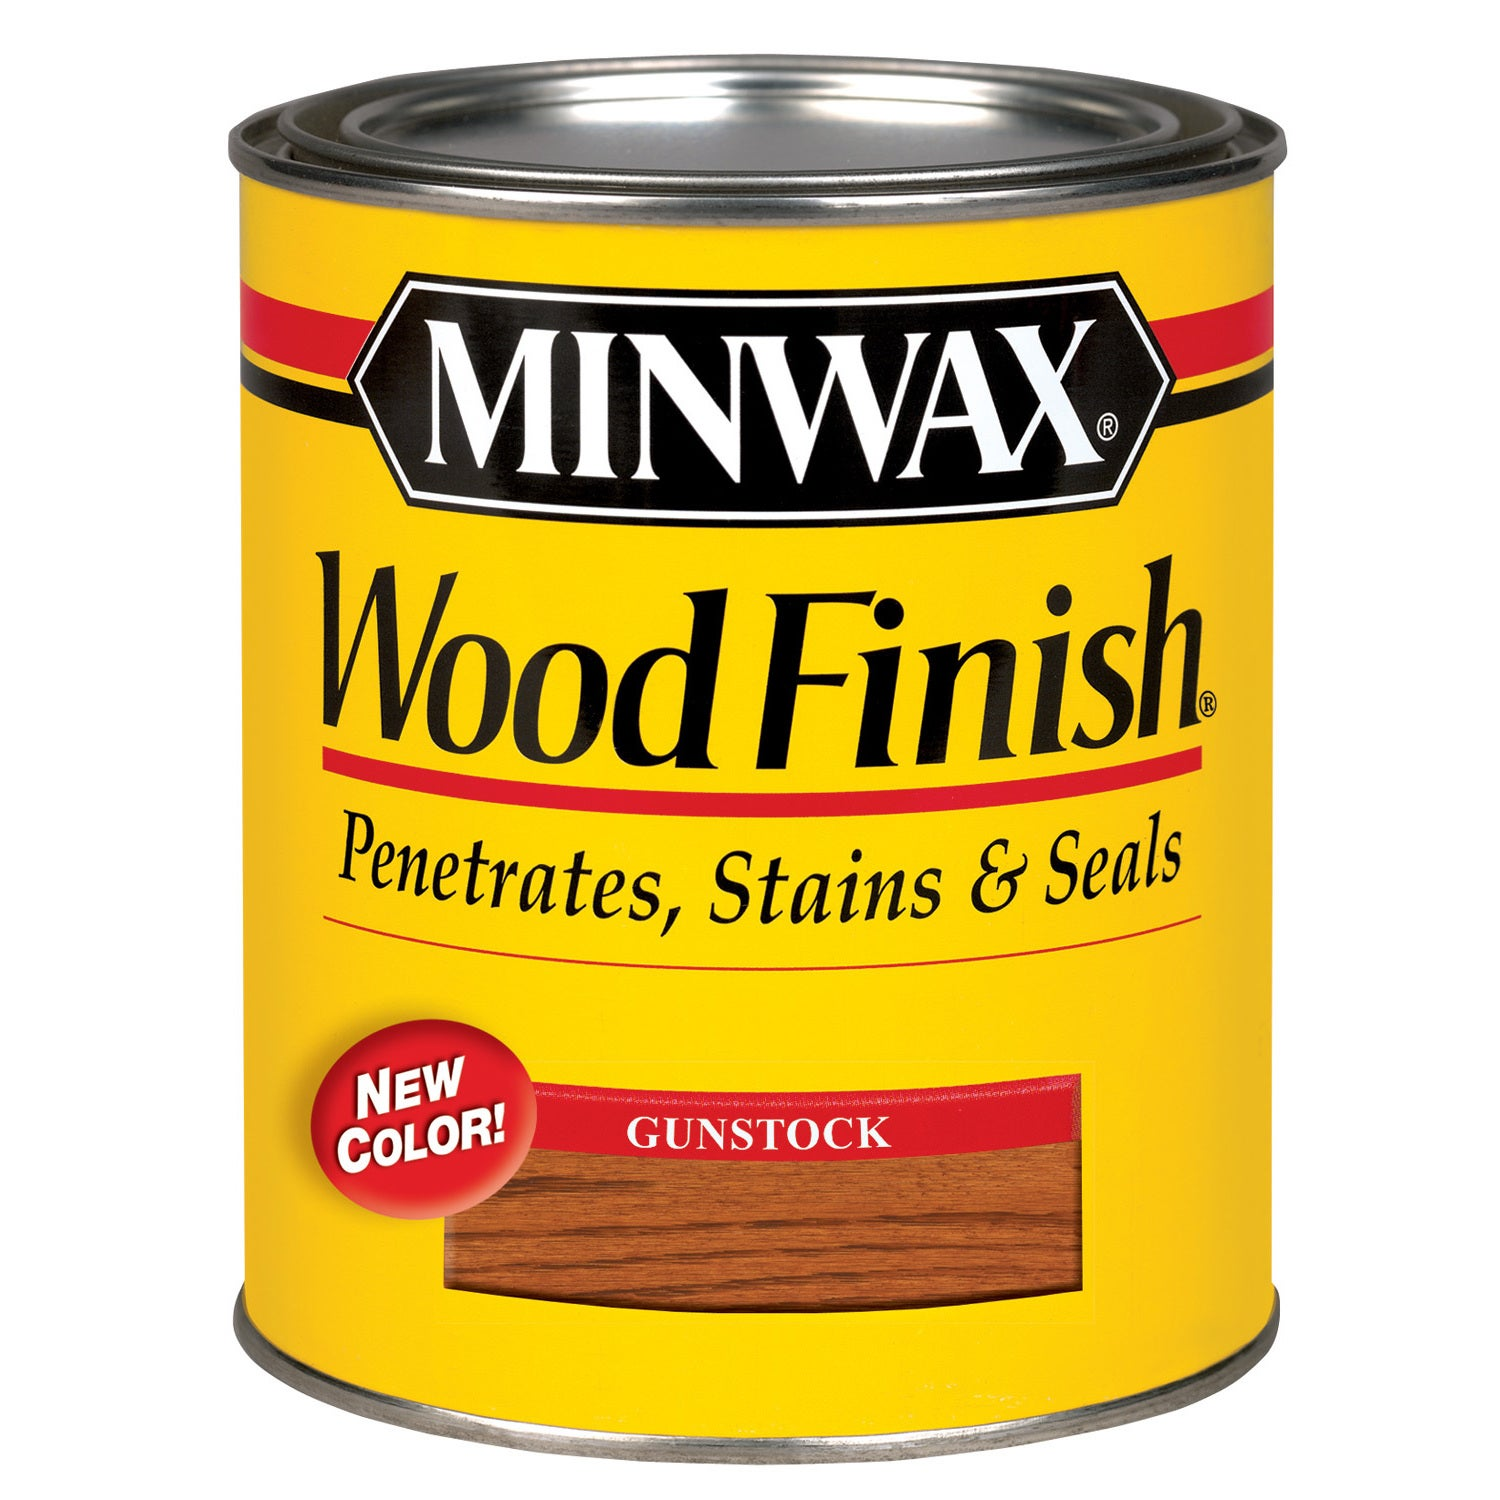 Minwax 70045 QT GUNSTOCK WD.FINISH - Minwax 7300 Antique Furniture Refinisher, 1 Qt, Liquid, Black From